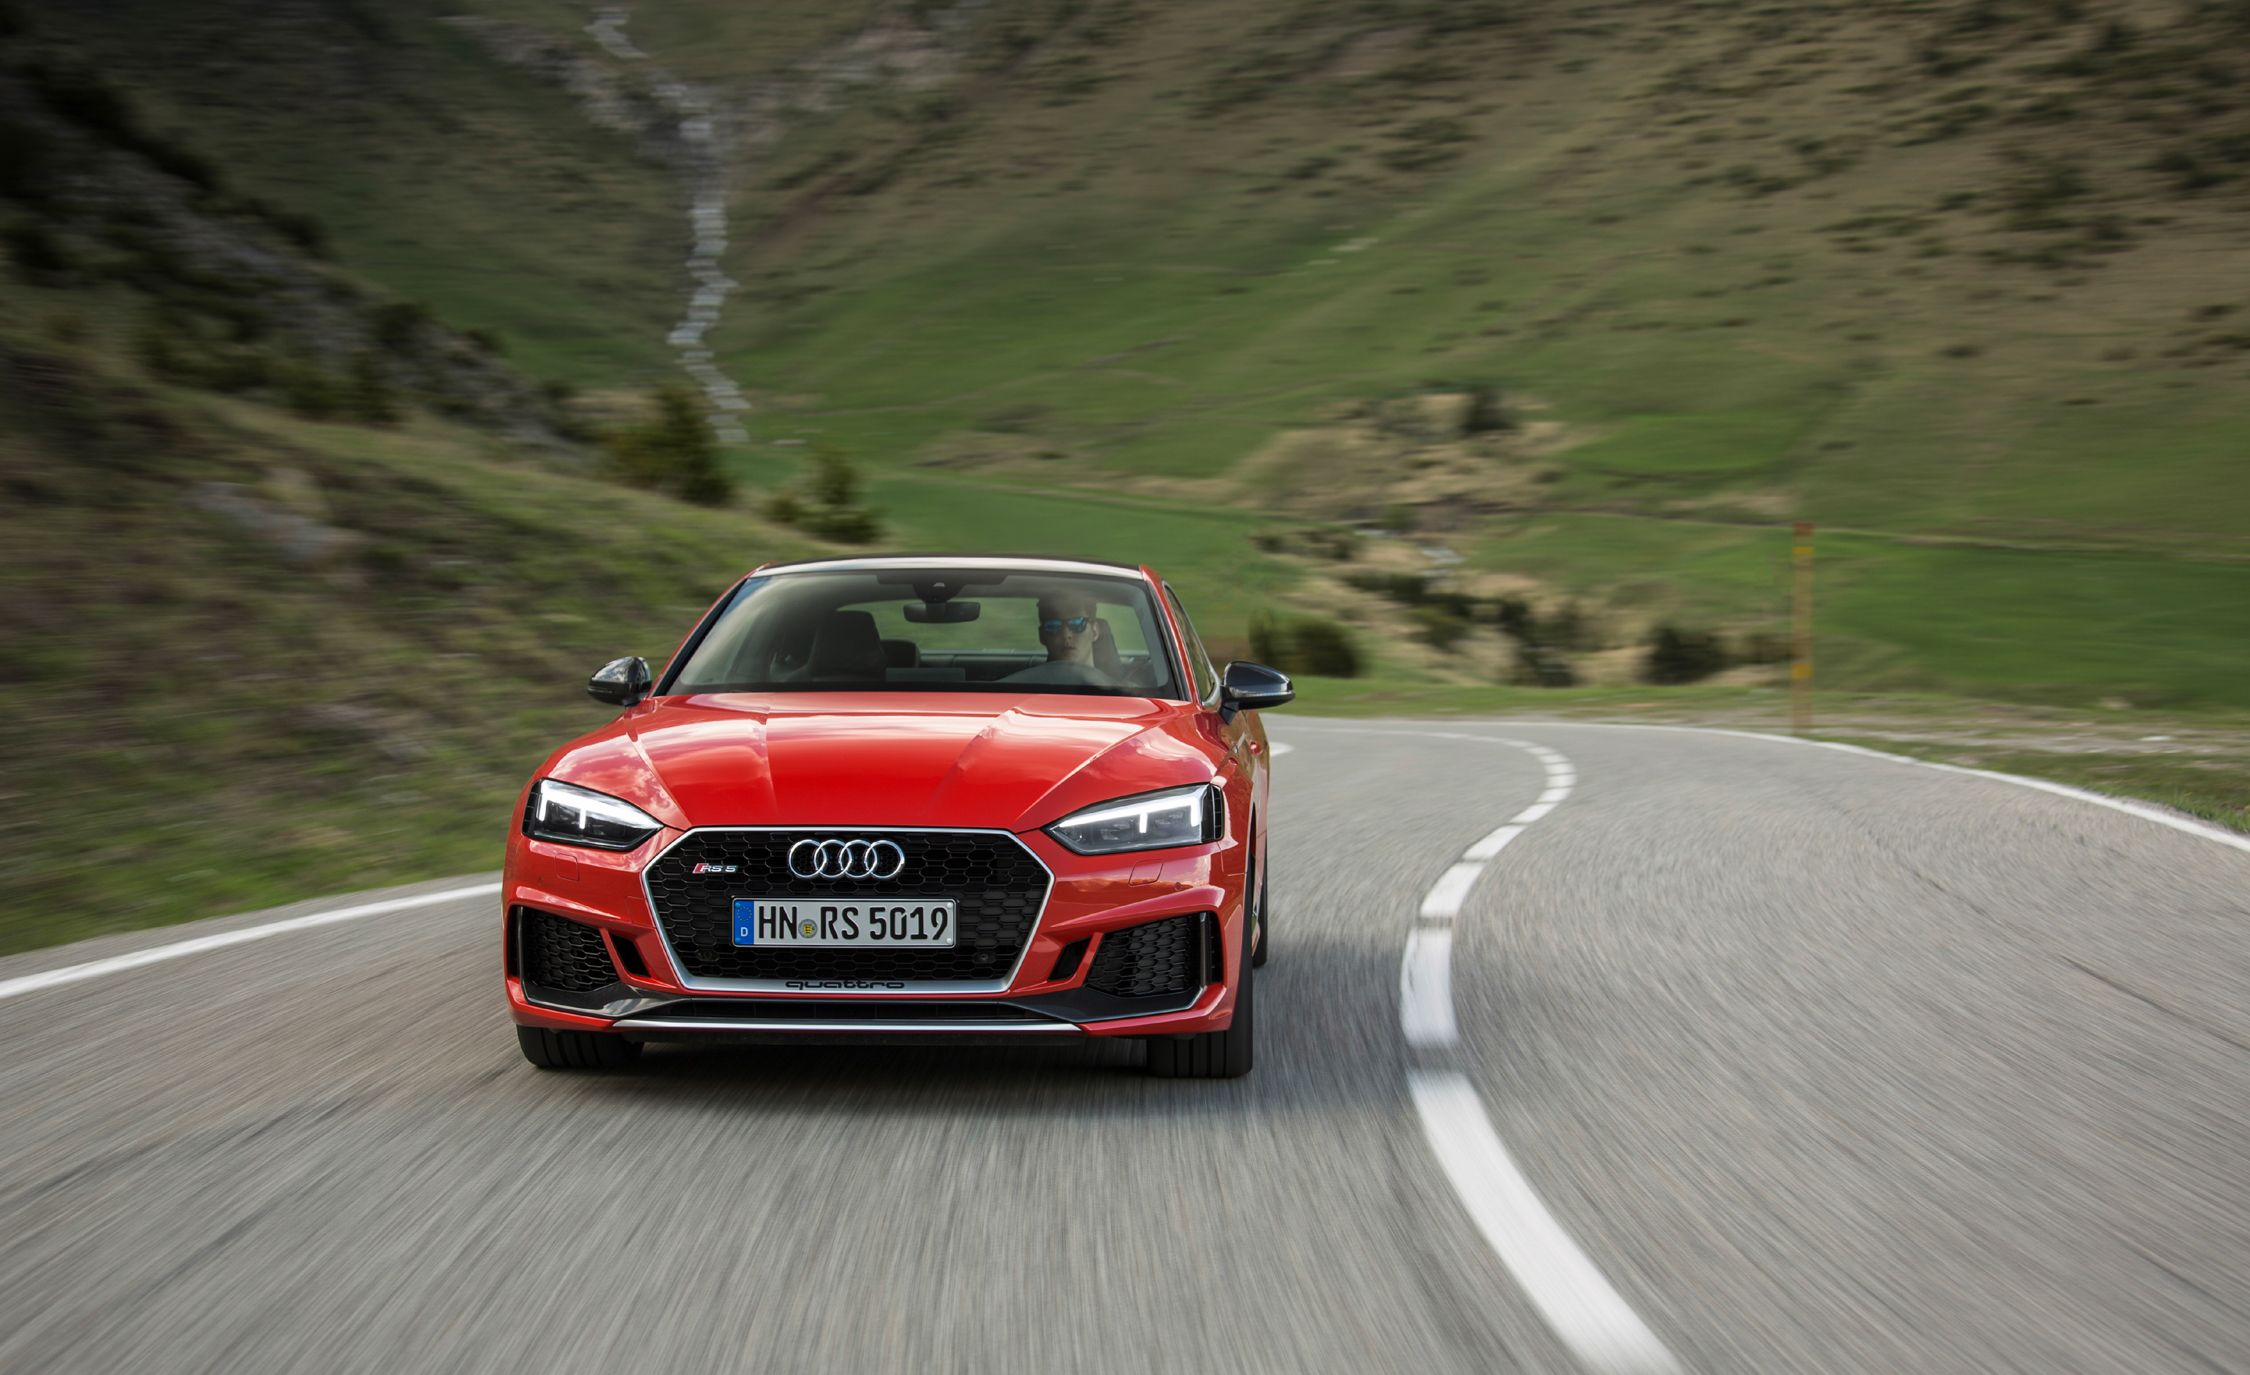 מסודר 2019 Audi RS5 Reviews | Audi RS5 Price, Photos, and Specs | Car CM-47